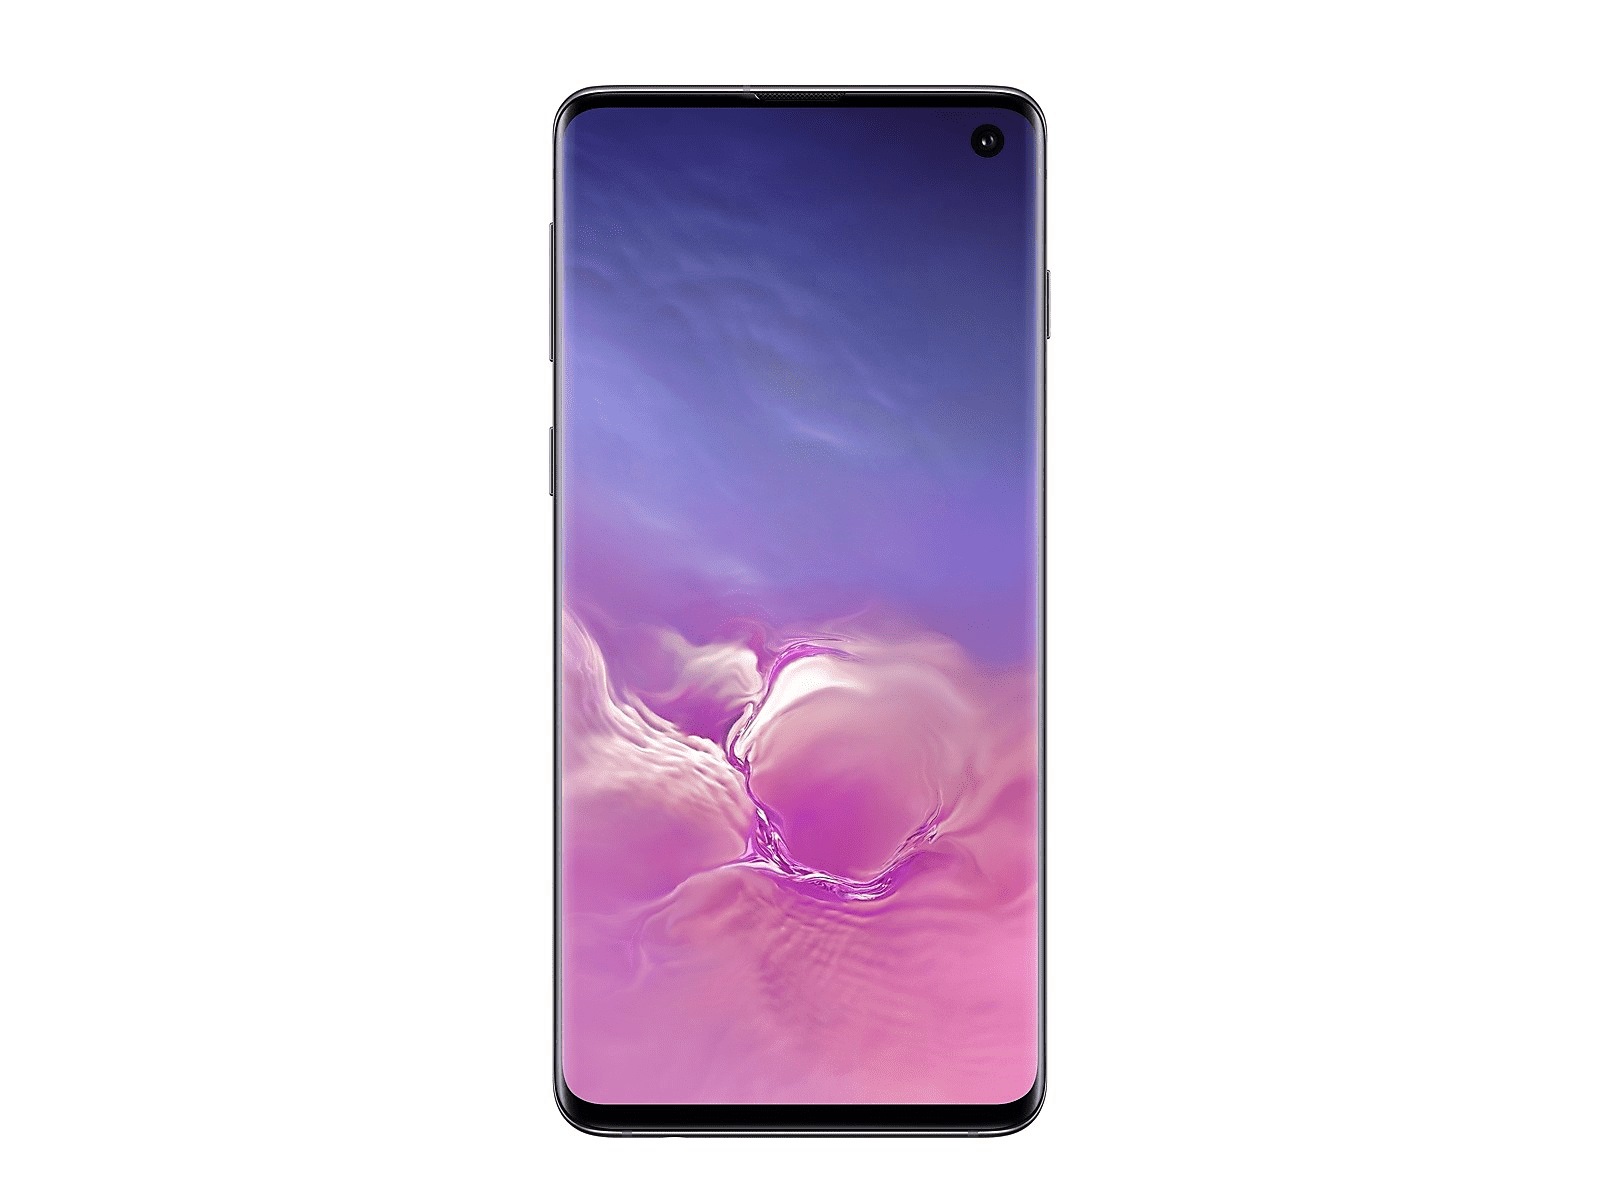 200$ Target gift card for Samsung Galaxy S10 devices $900